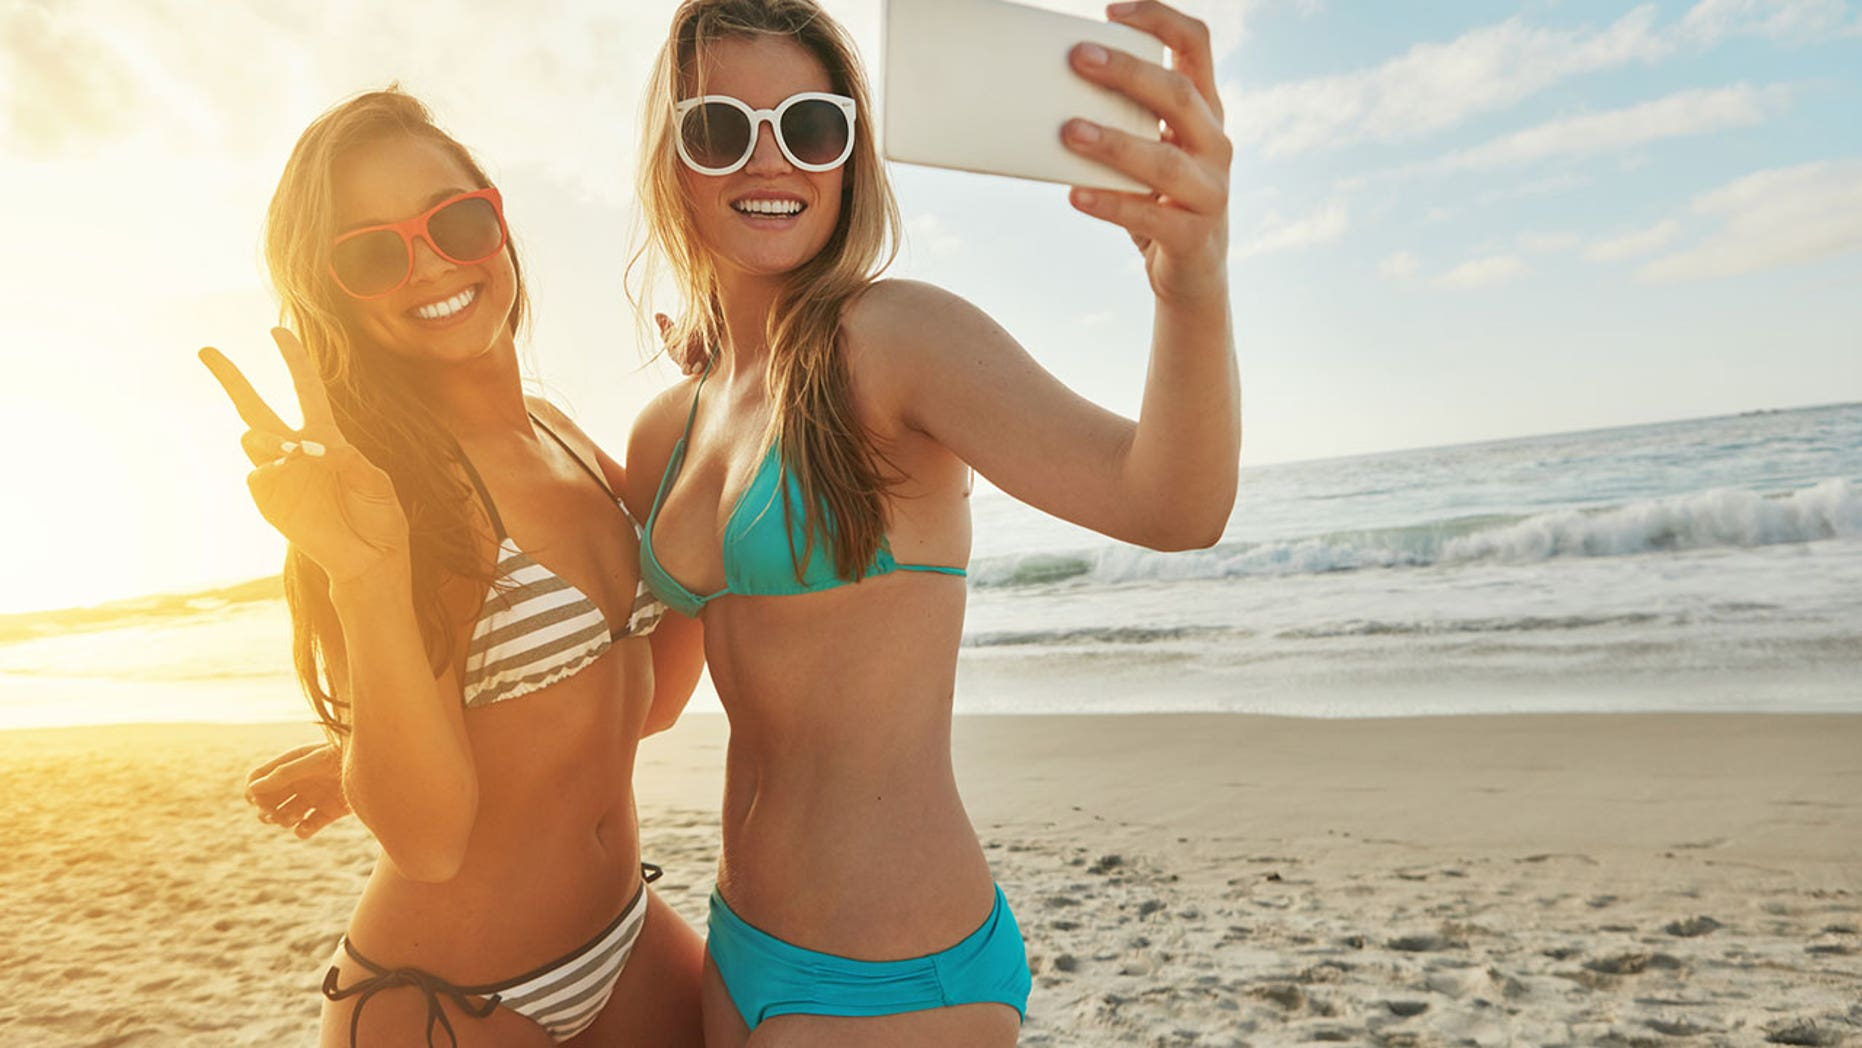 Can't get away? You can still live vicariously through beachgoers on Instagram.